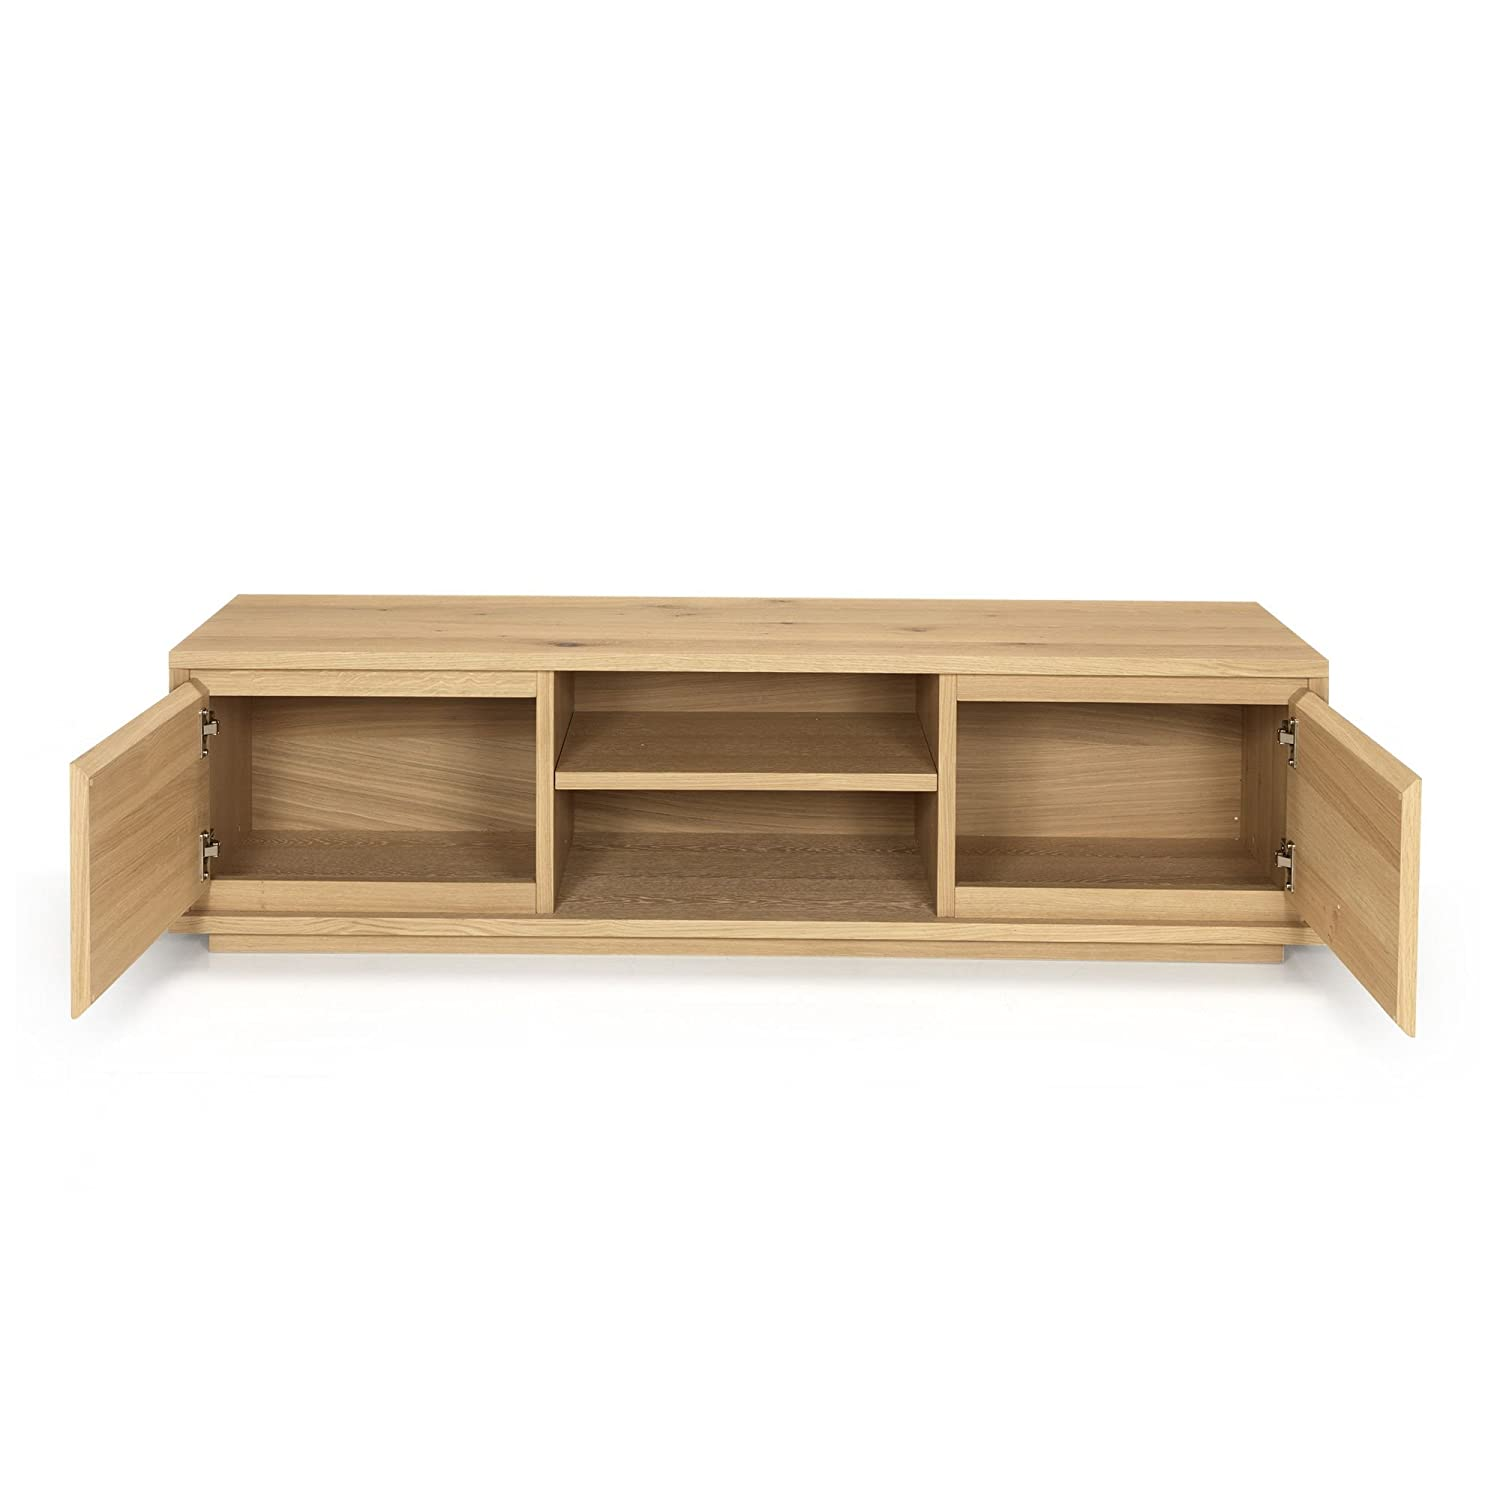 Stockholm Meuble Tv Design Scandinave Naturel Alinea 150 0x40  # Meuble Tv Design Suedois